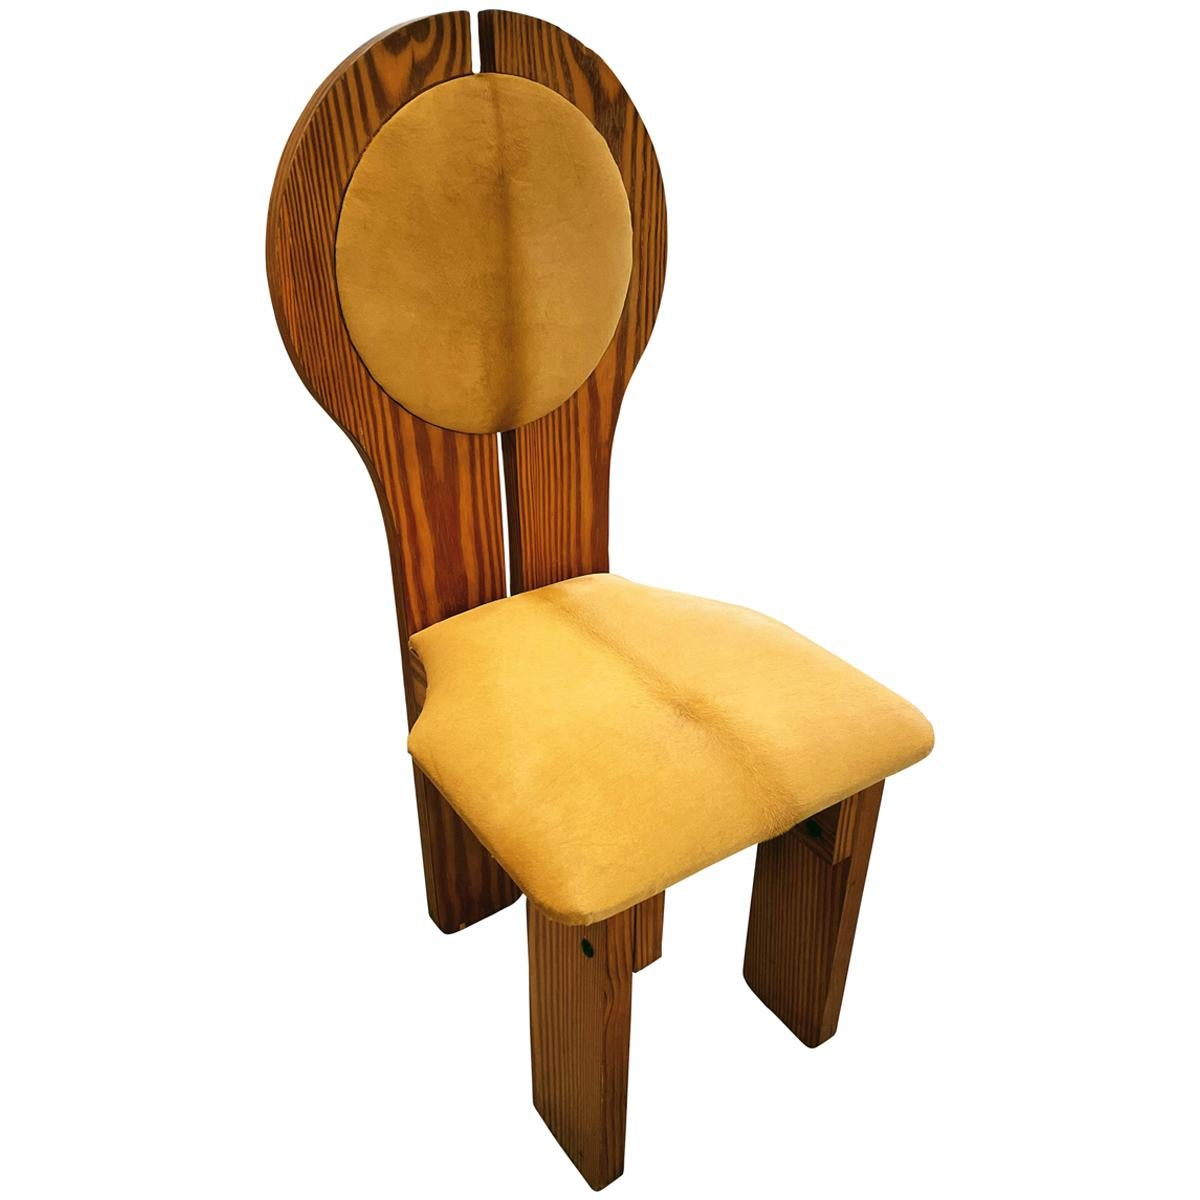 Hungarian Ponyskin Upholstered Studio Craft Chair in Organic Design, 1970